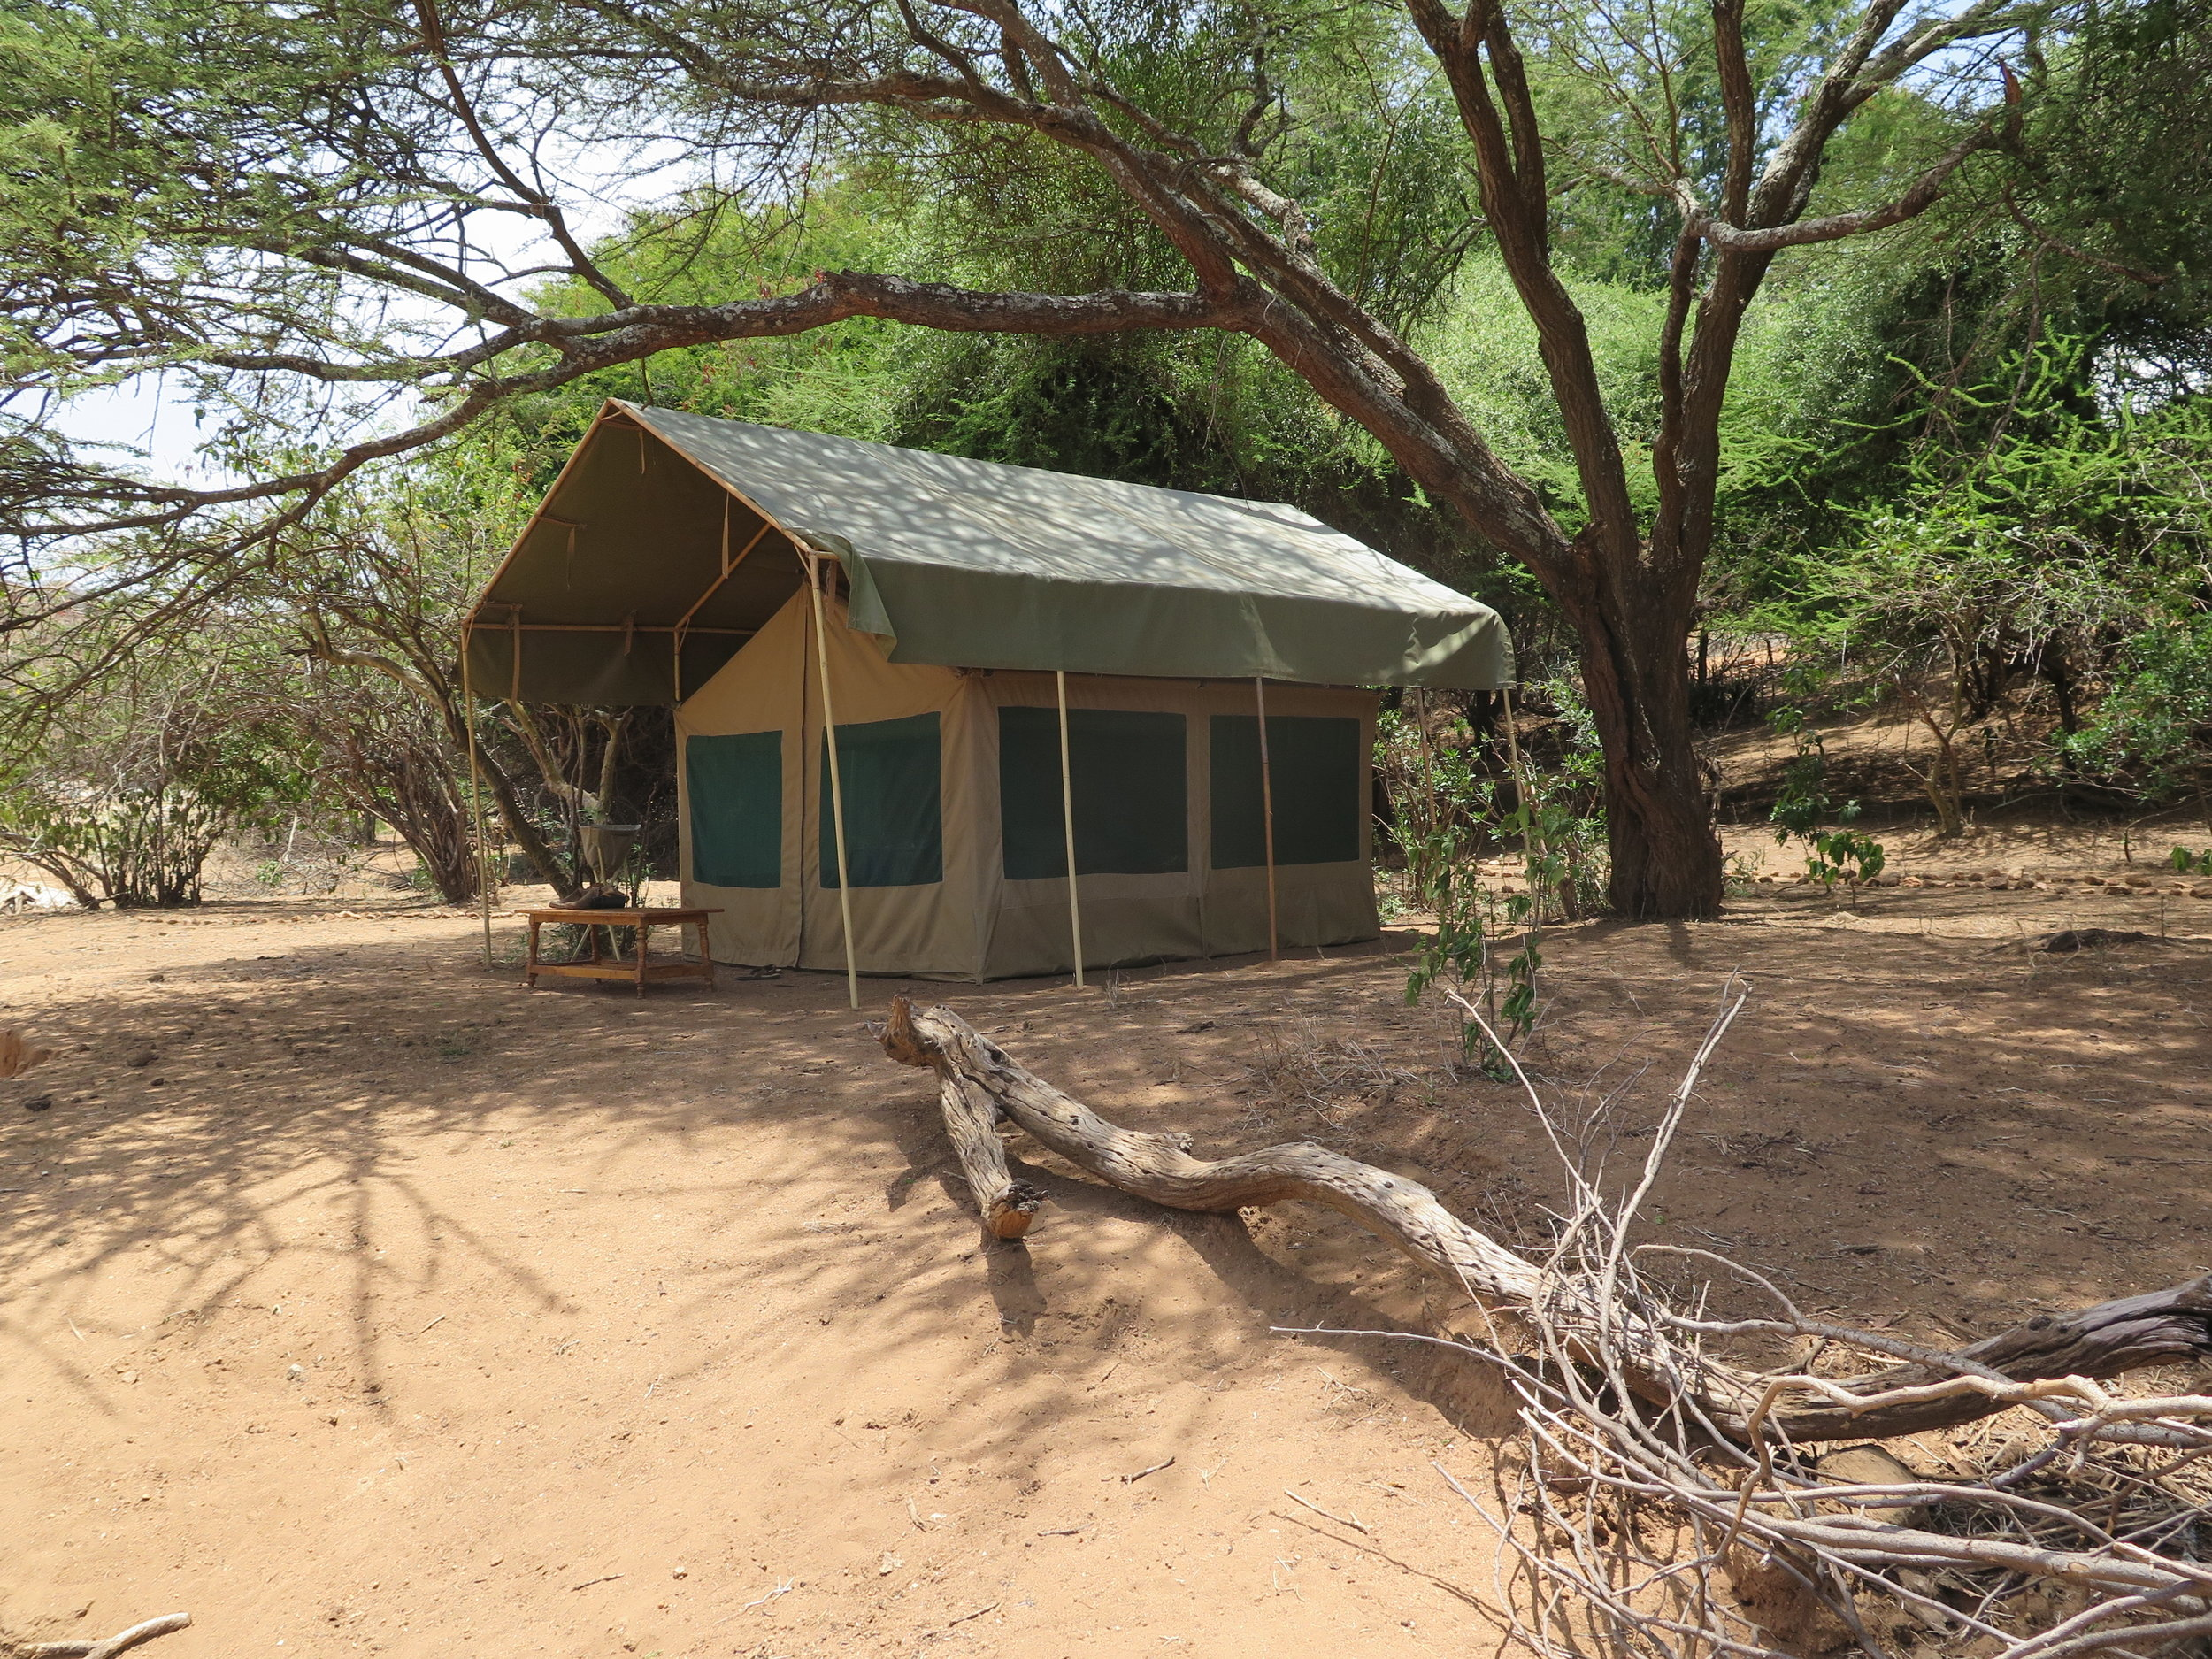 One of our tents at Pitari's Camp